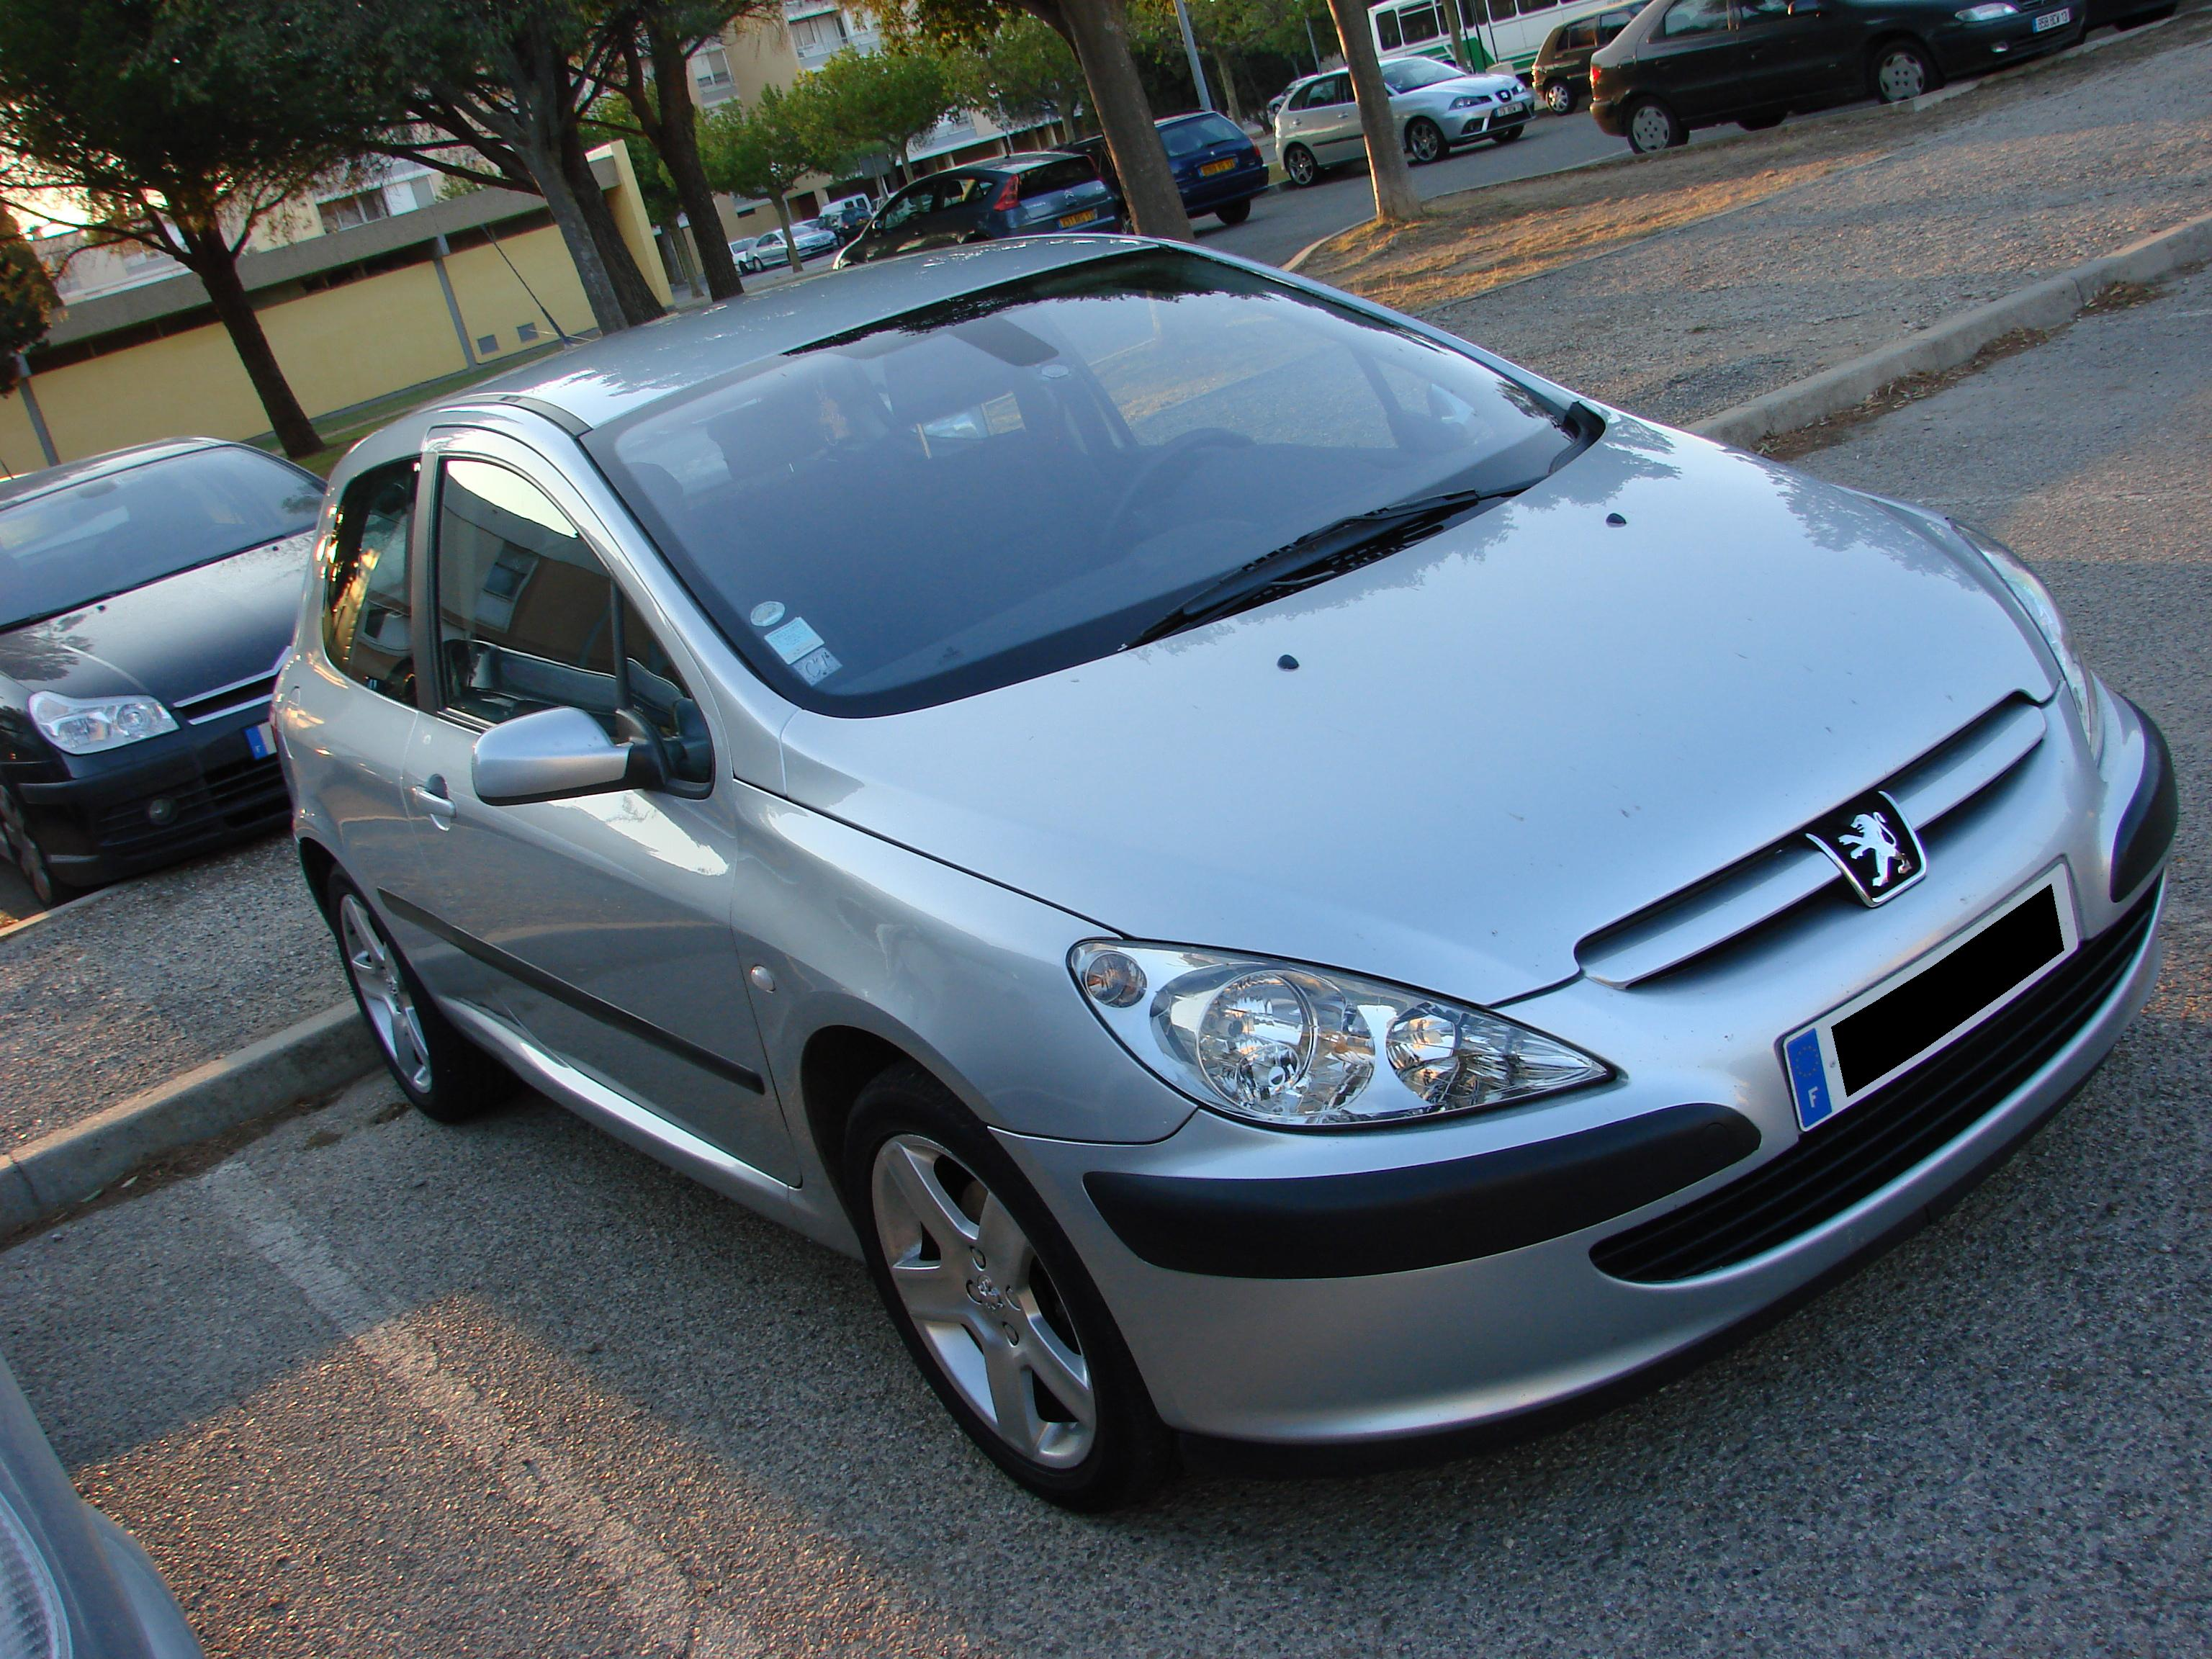 peugeot 307 2009 pictures #14